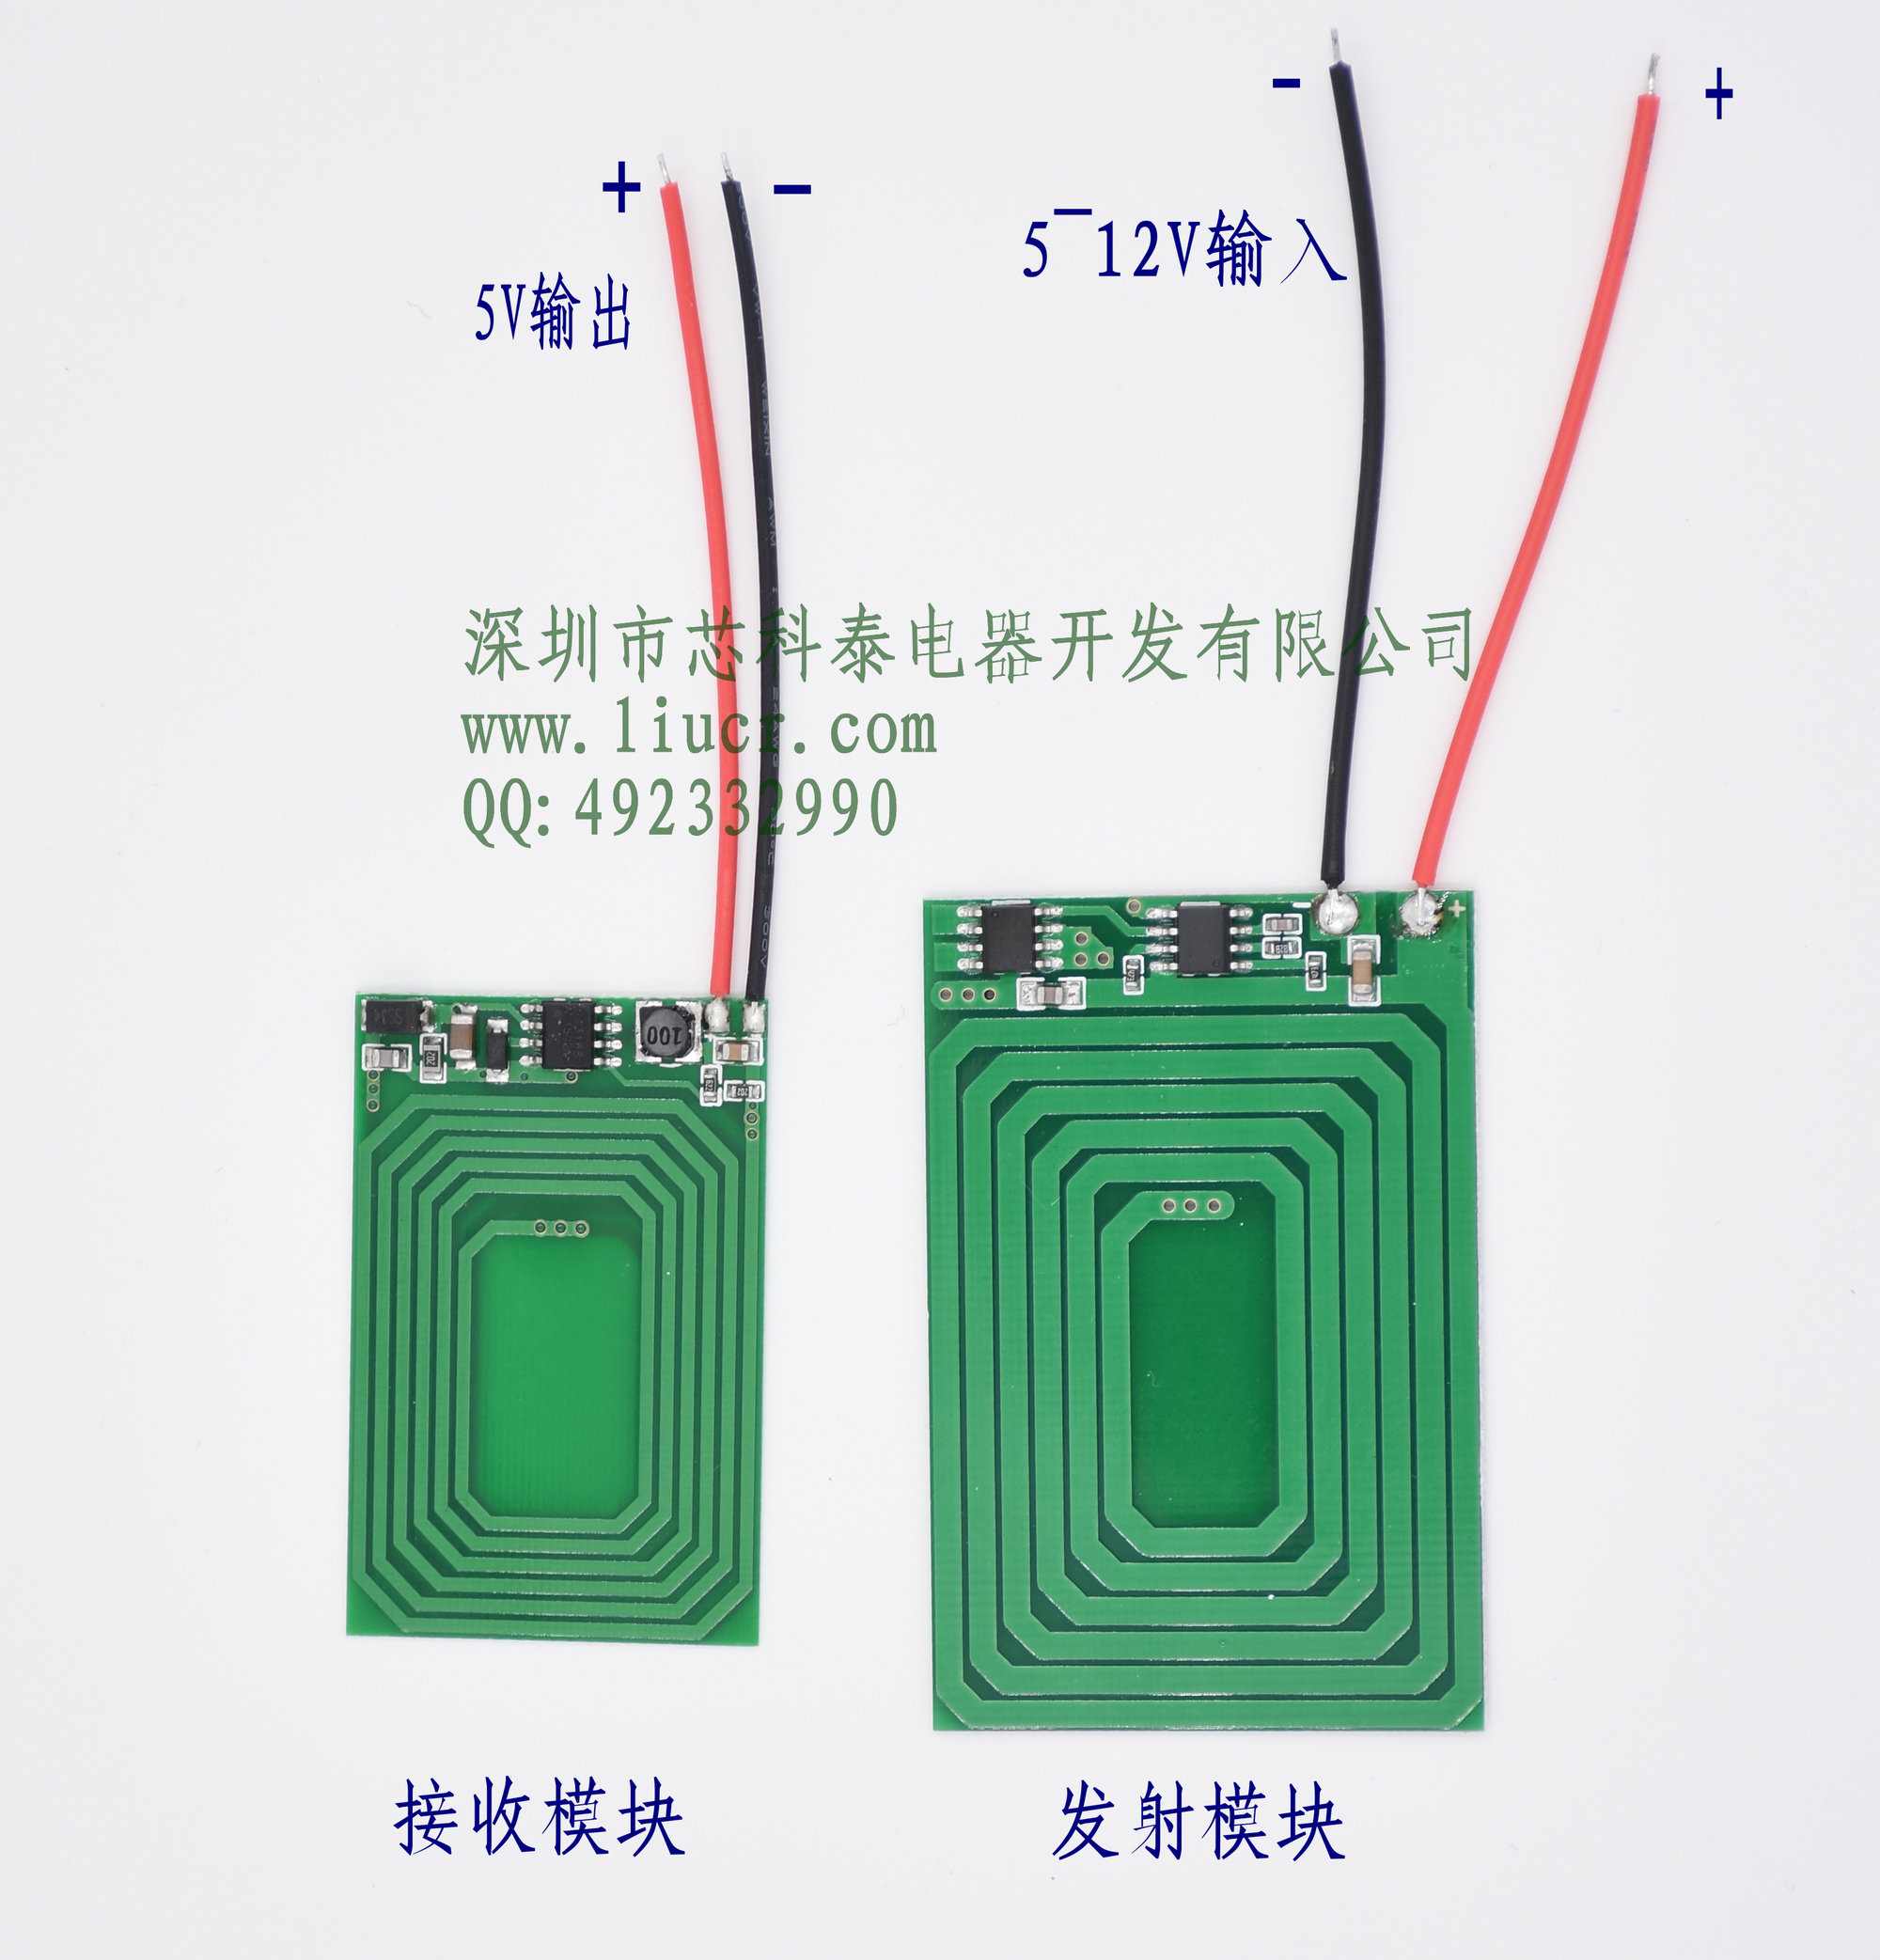 PCB wireless charging module XKT-412A wireless power supply module wireless charger DIY xkt 412 wireless charging module wireless power supply module high current wireless transmission module